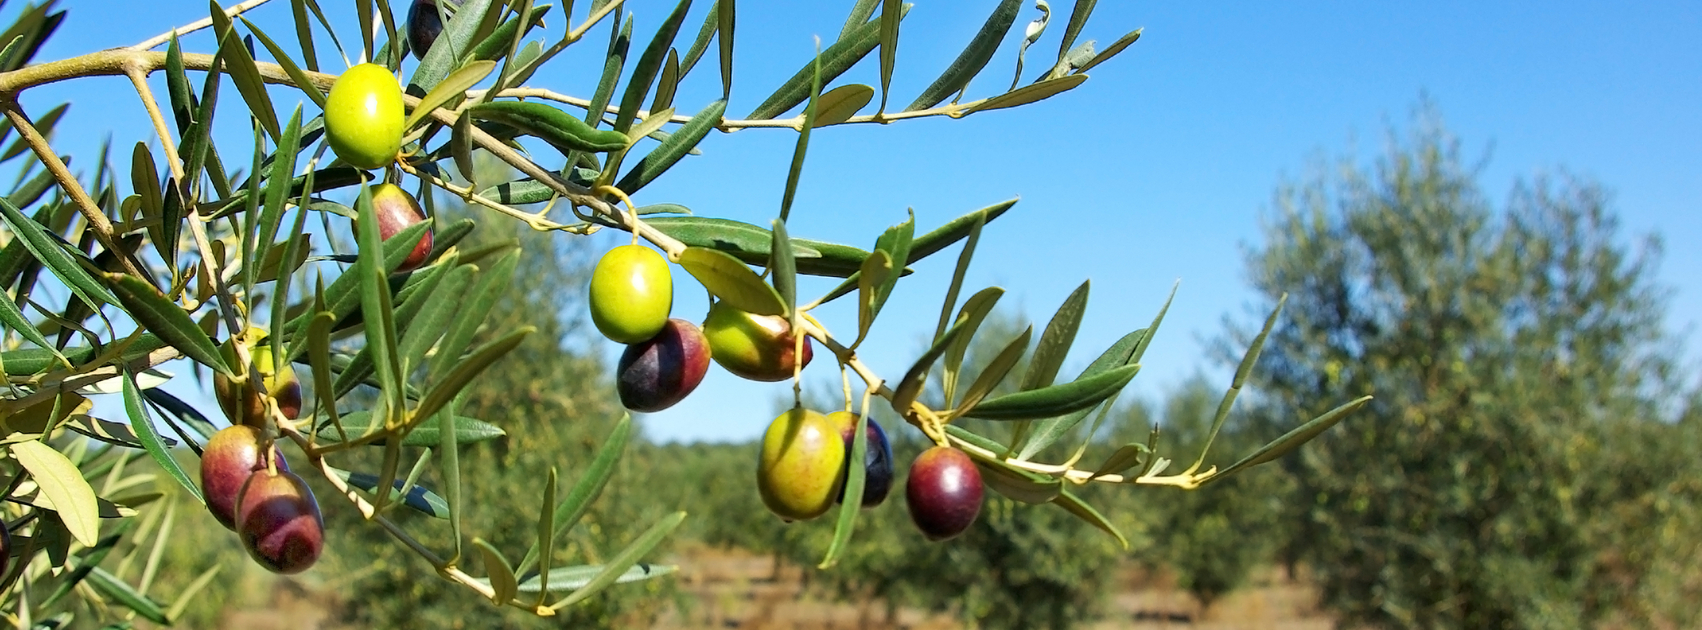 The Symbolism Of The Olive Tree In The Jewish Faith Sponsor An